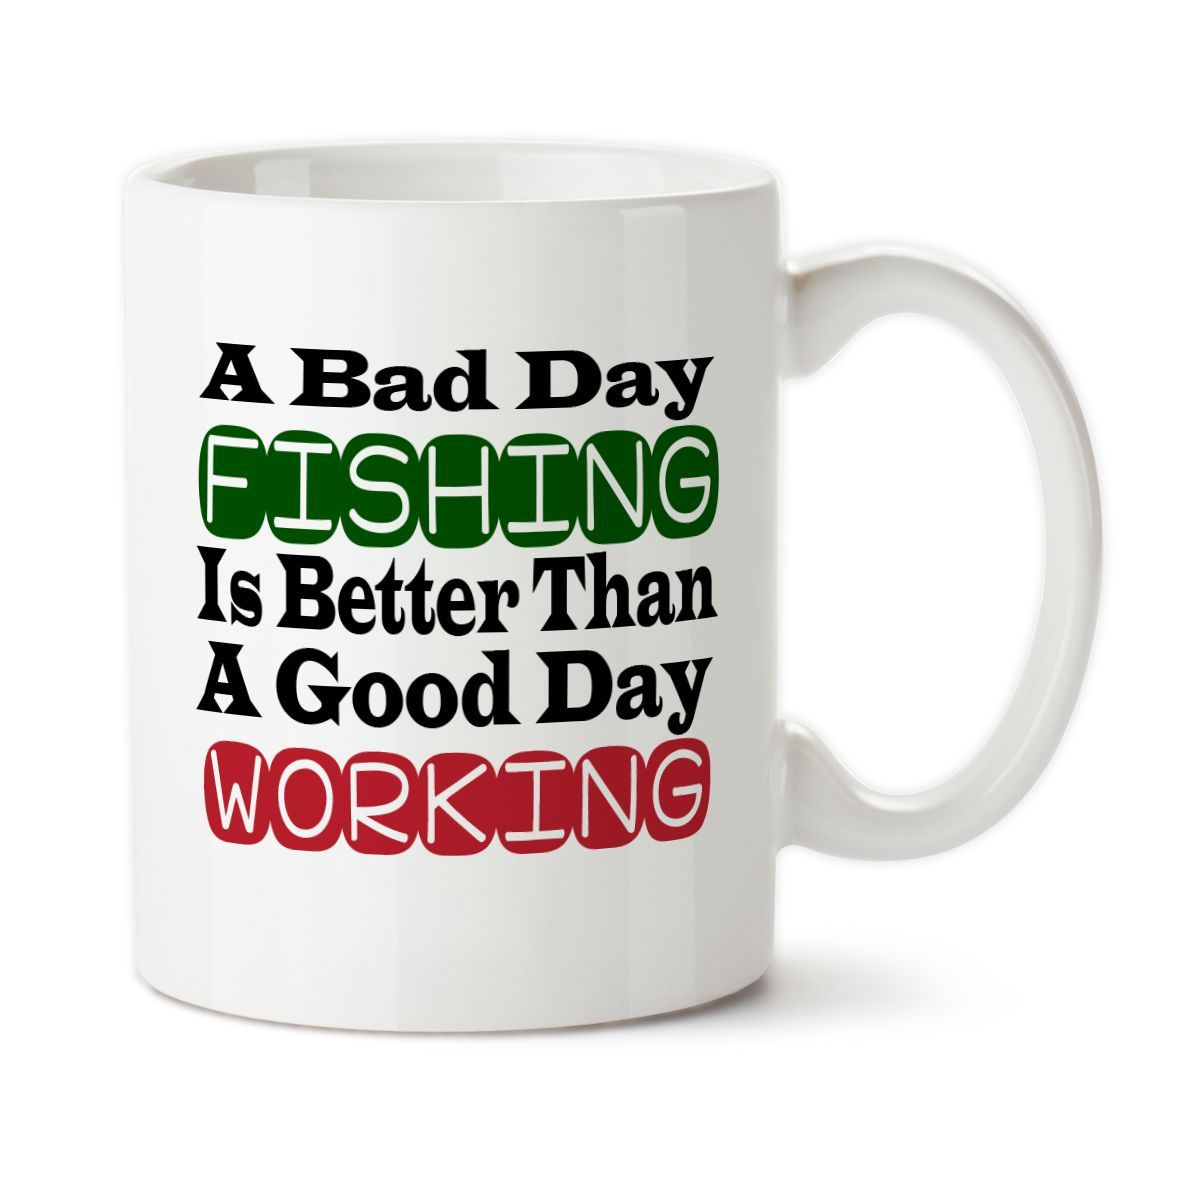 Coffee Mug A Bad Day Fishing Funny Humor Fishing Sarcastic Fishing Retired Retirement Gift Mugs Funny Coffee Mugs Funny Mugs